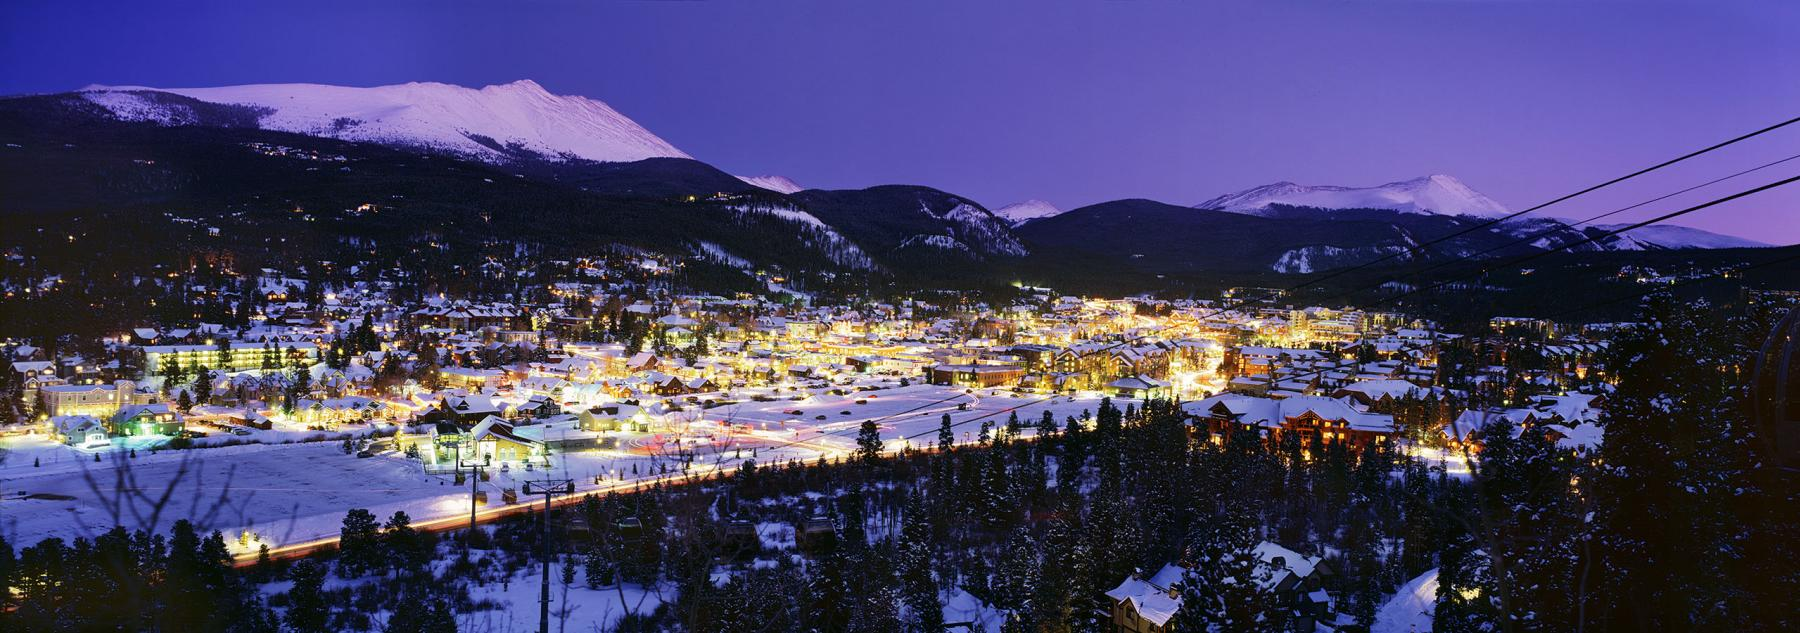 Breckenridge Lights